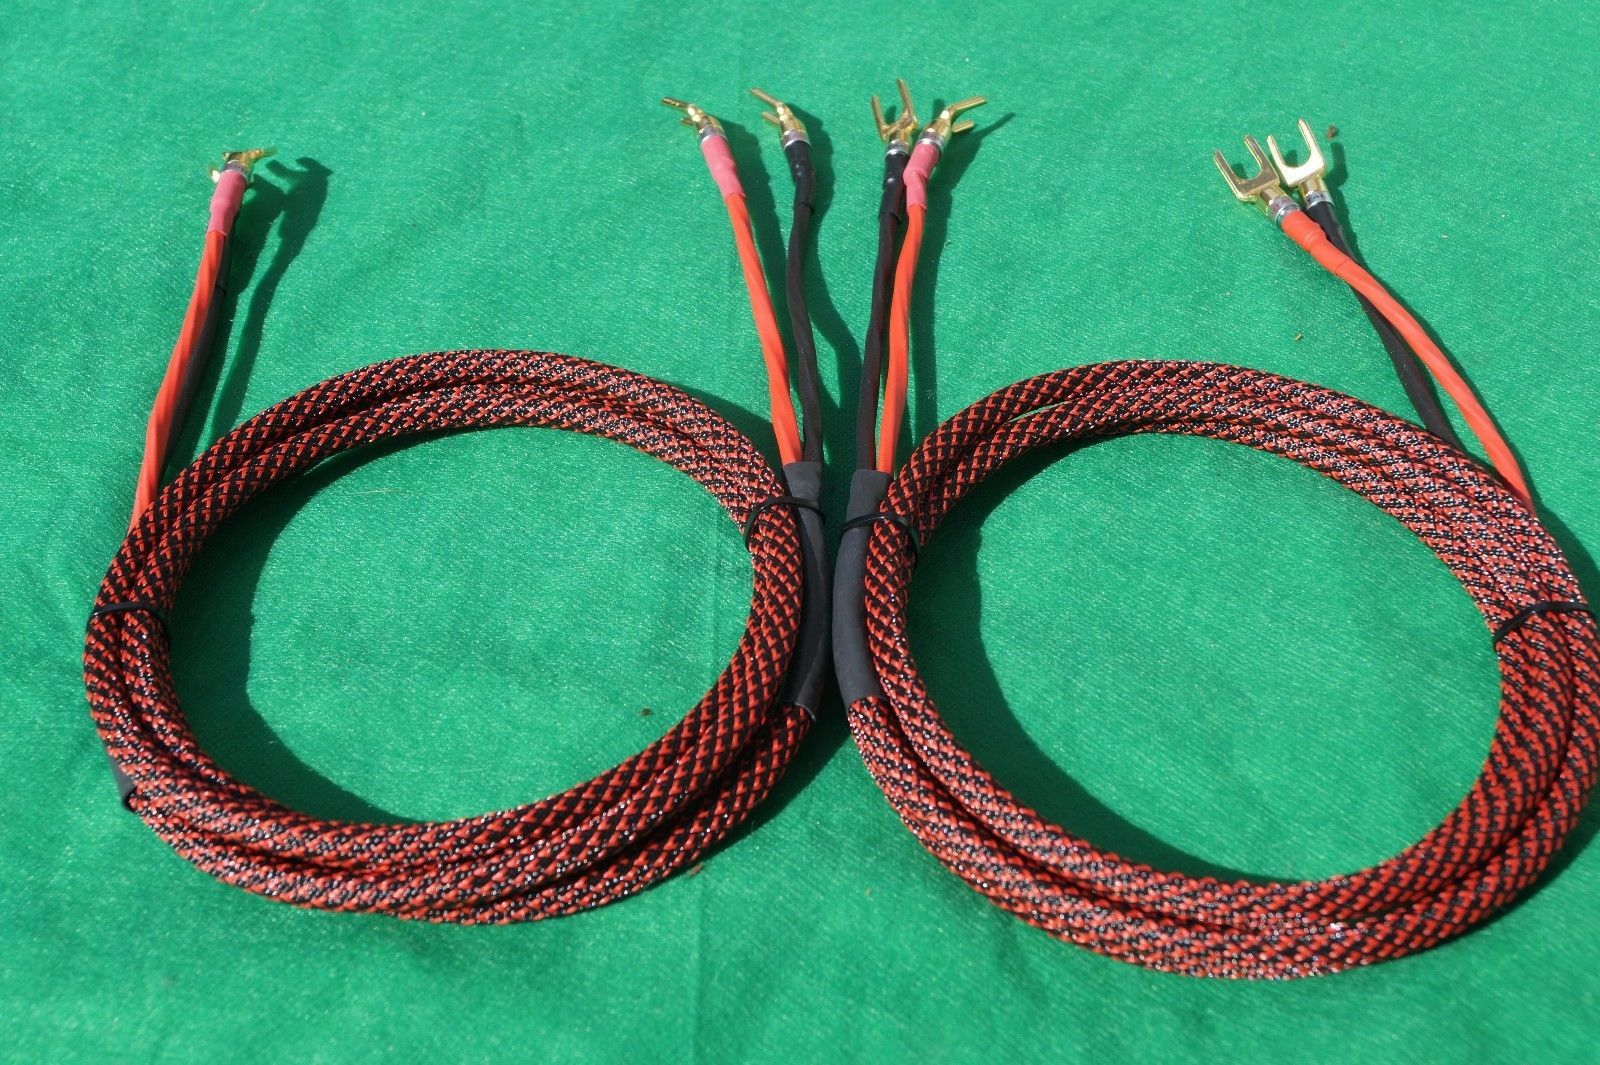 USA MADE. Elite Pure Copper BiWire Speaker Cable 1 Pair 15 Ft 2 to 4 Spades